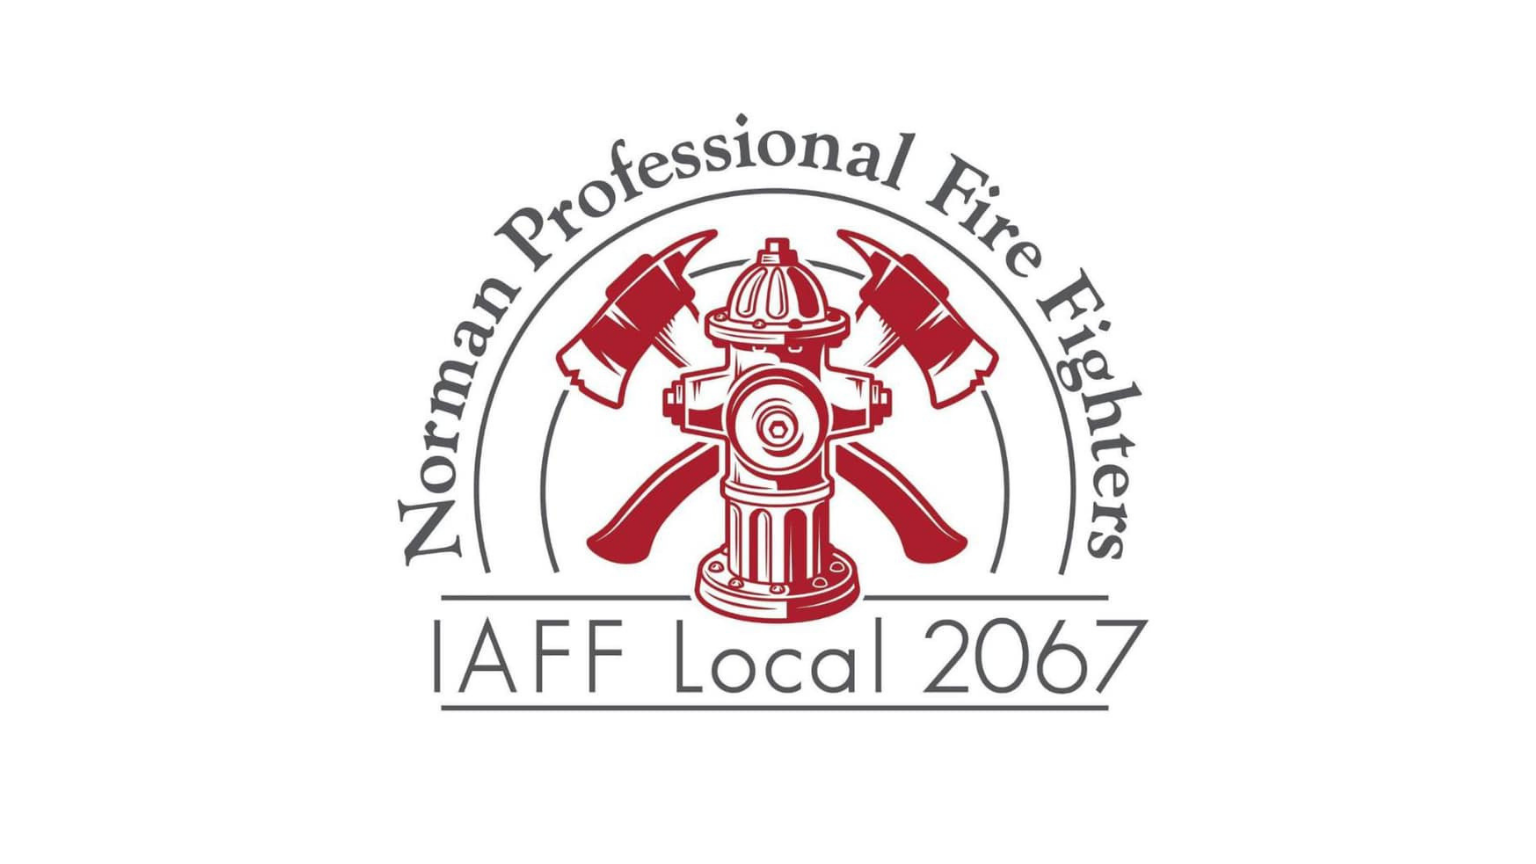 International Association of Firefighters - Local 2067